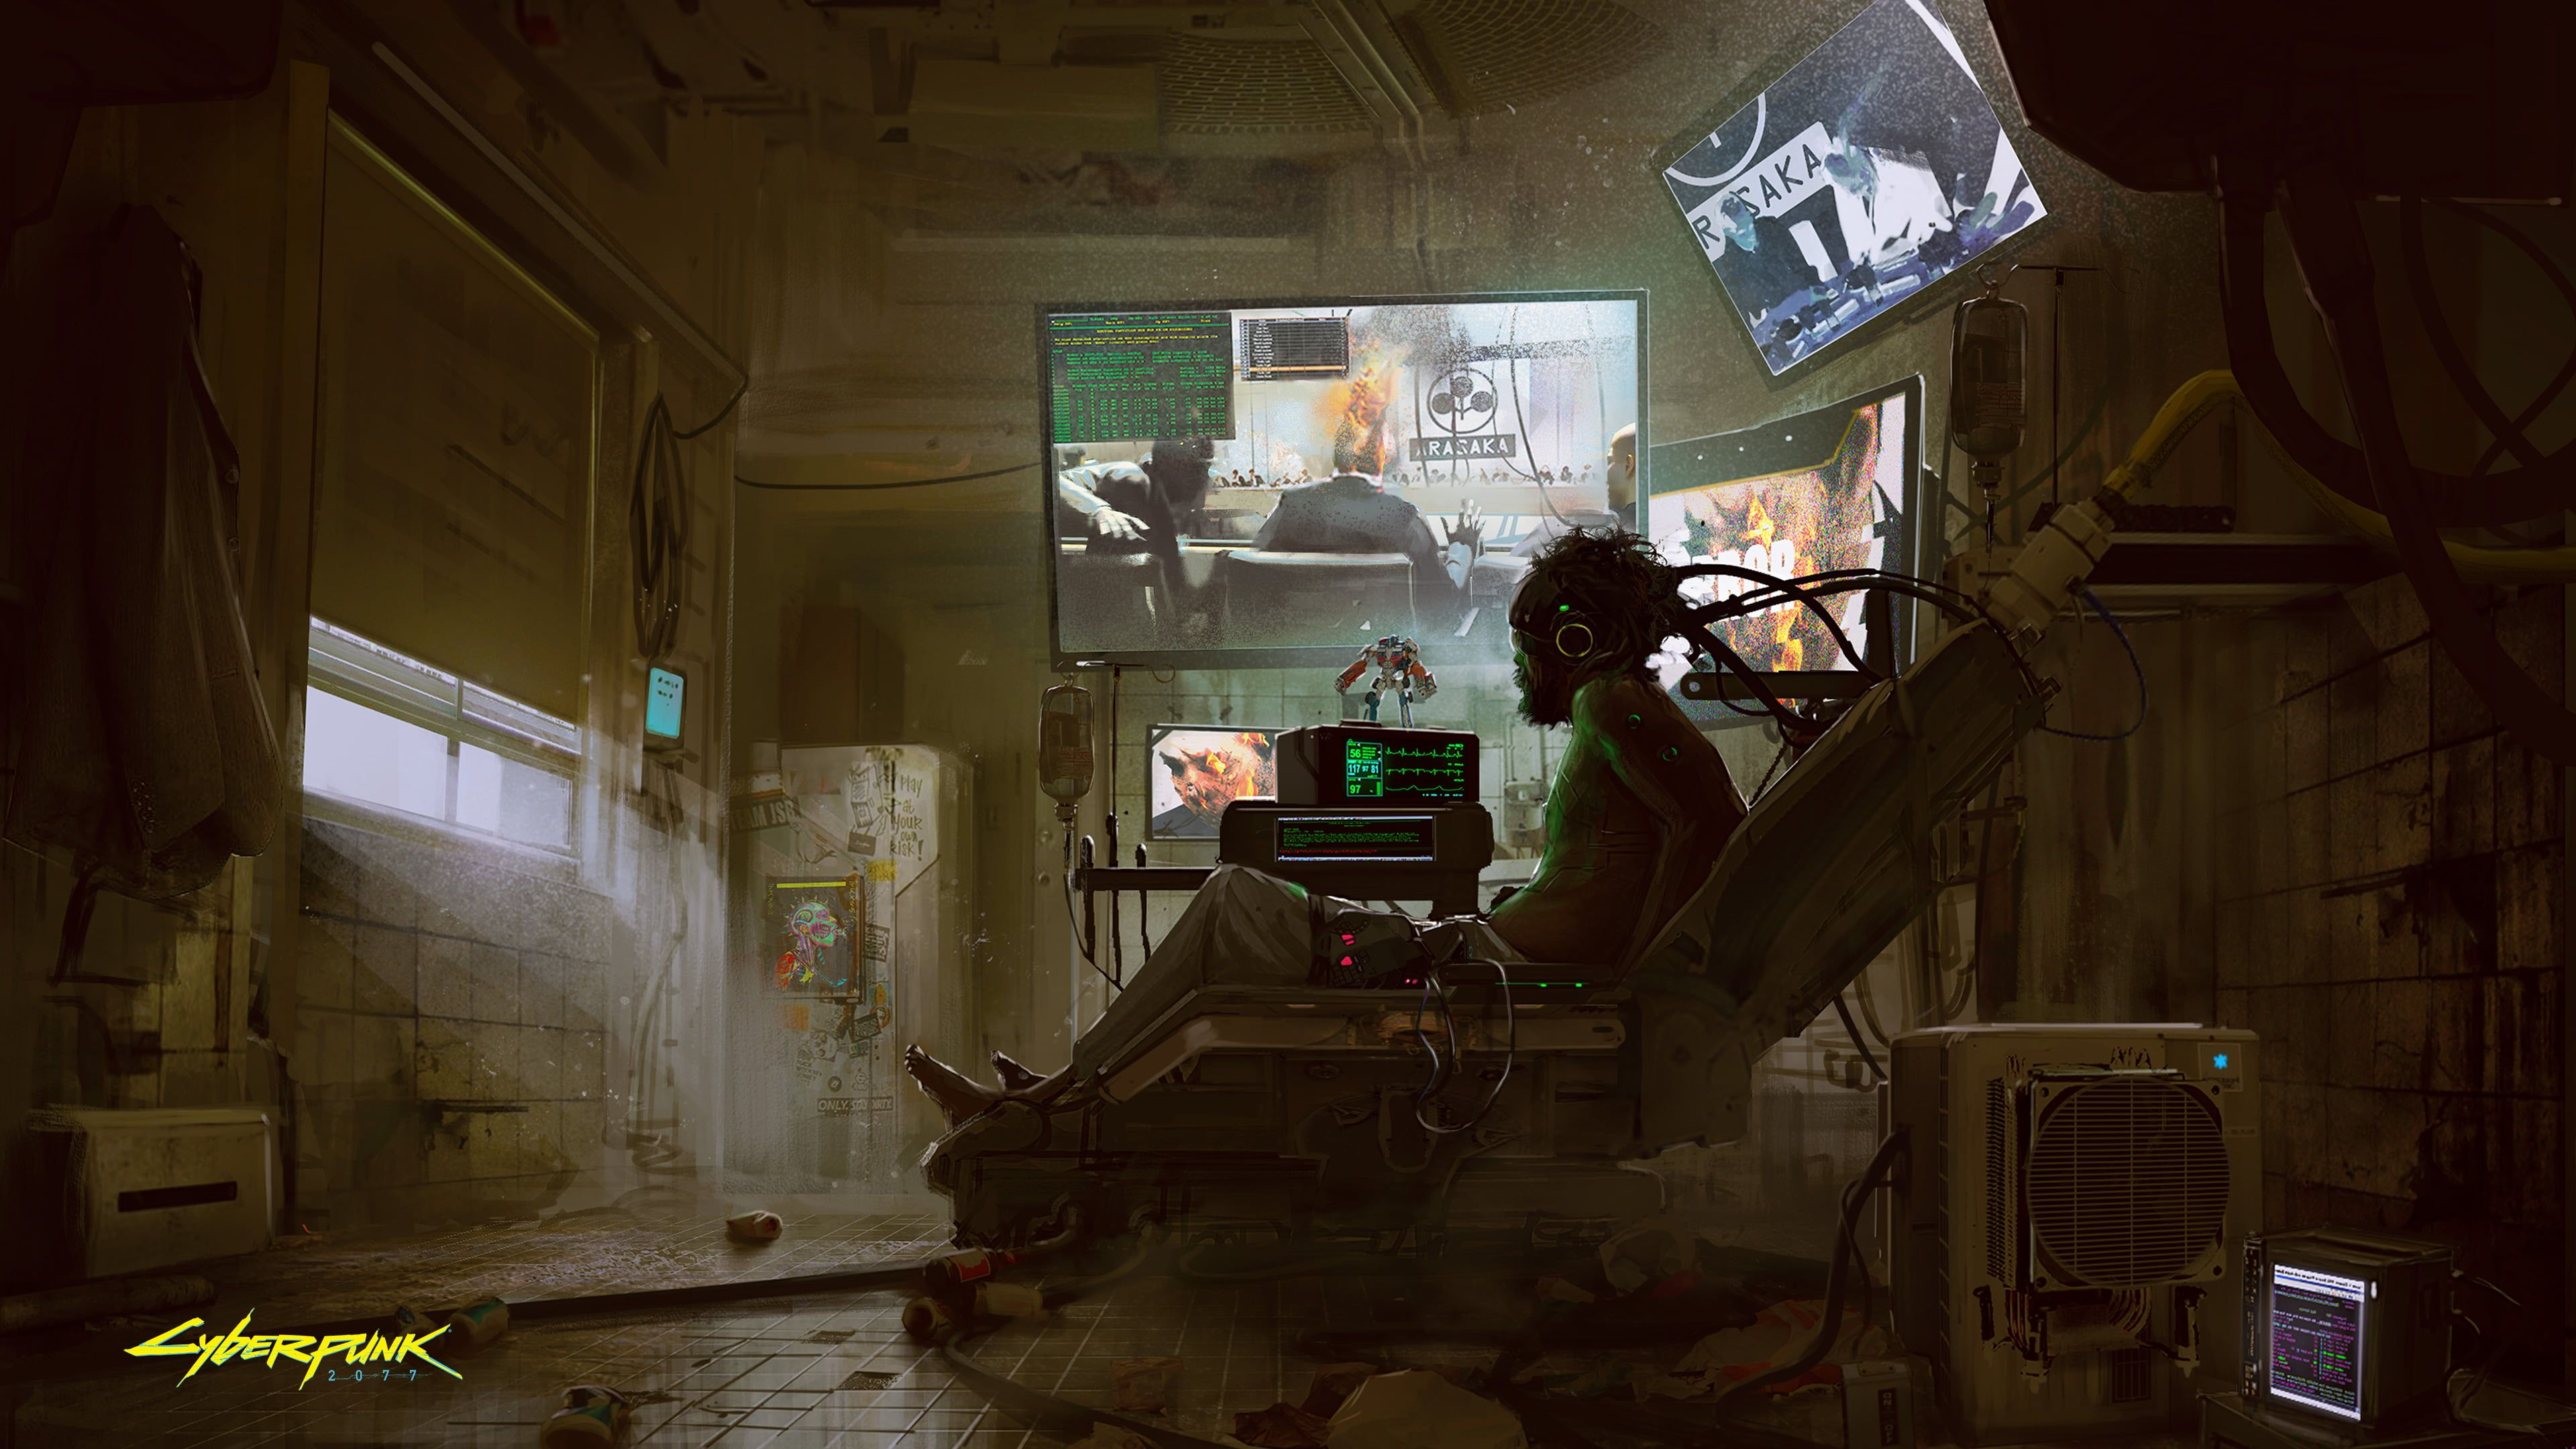 Man Lying On Chair Wallpaper Cyberpunk Cyberpunk 2077 Cyborg Video Games Fantasy Art Chinese 4k Wallpaper Hdwall Cyberpunk 2077 Concept Art Cyberpunk Art